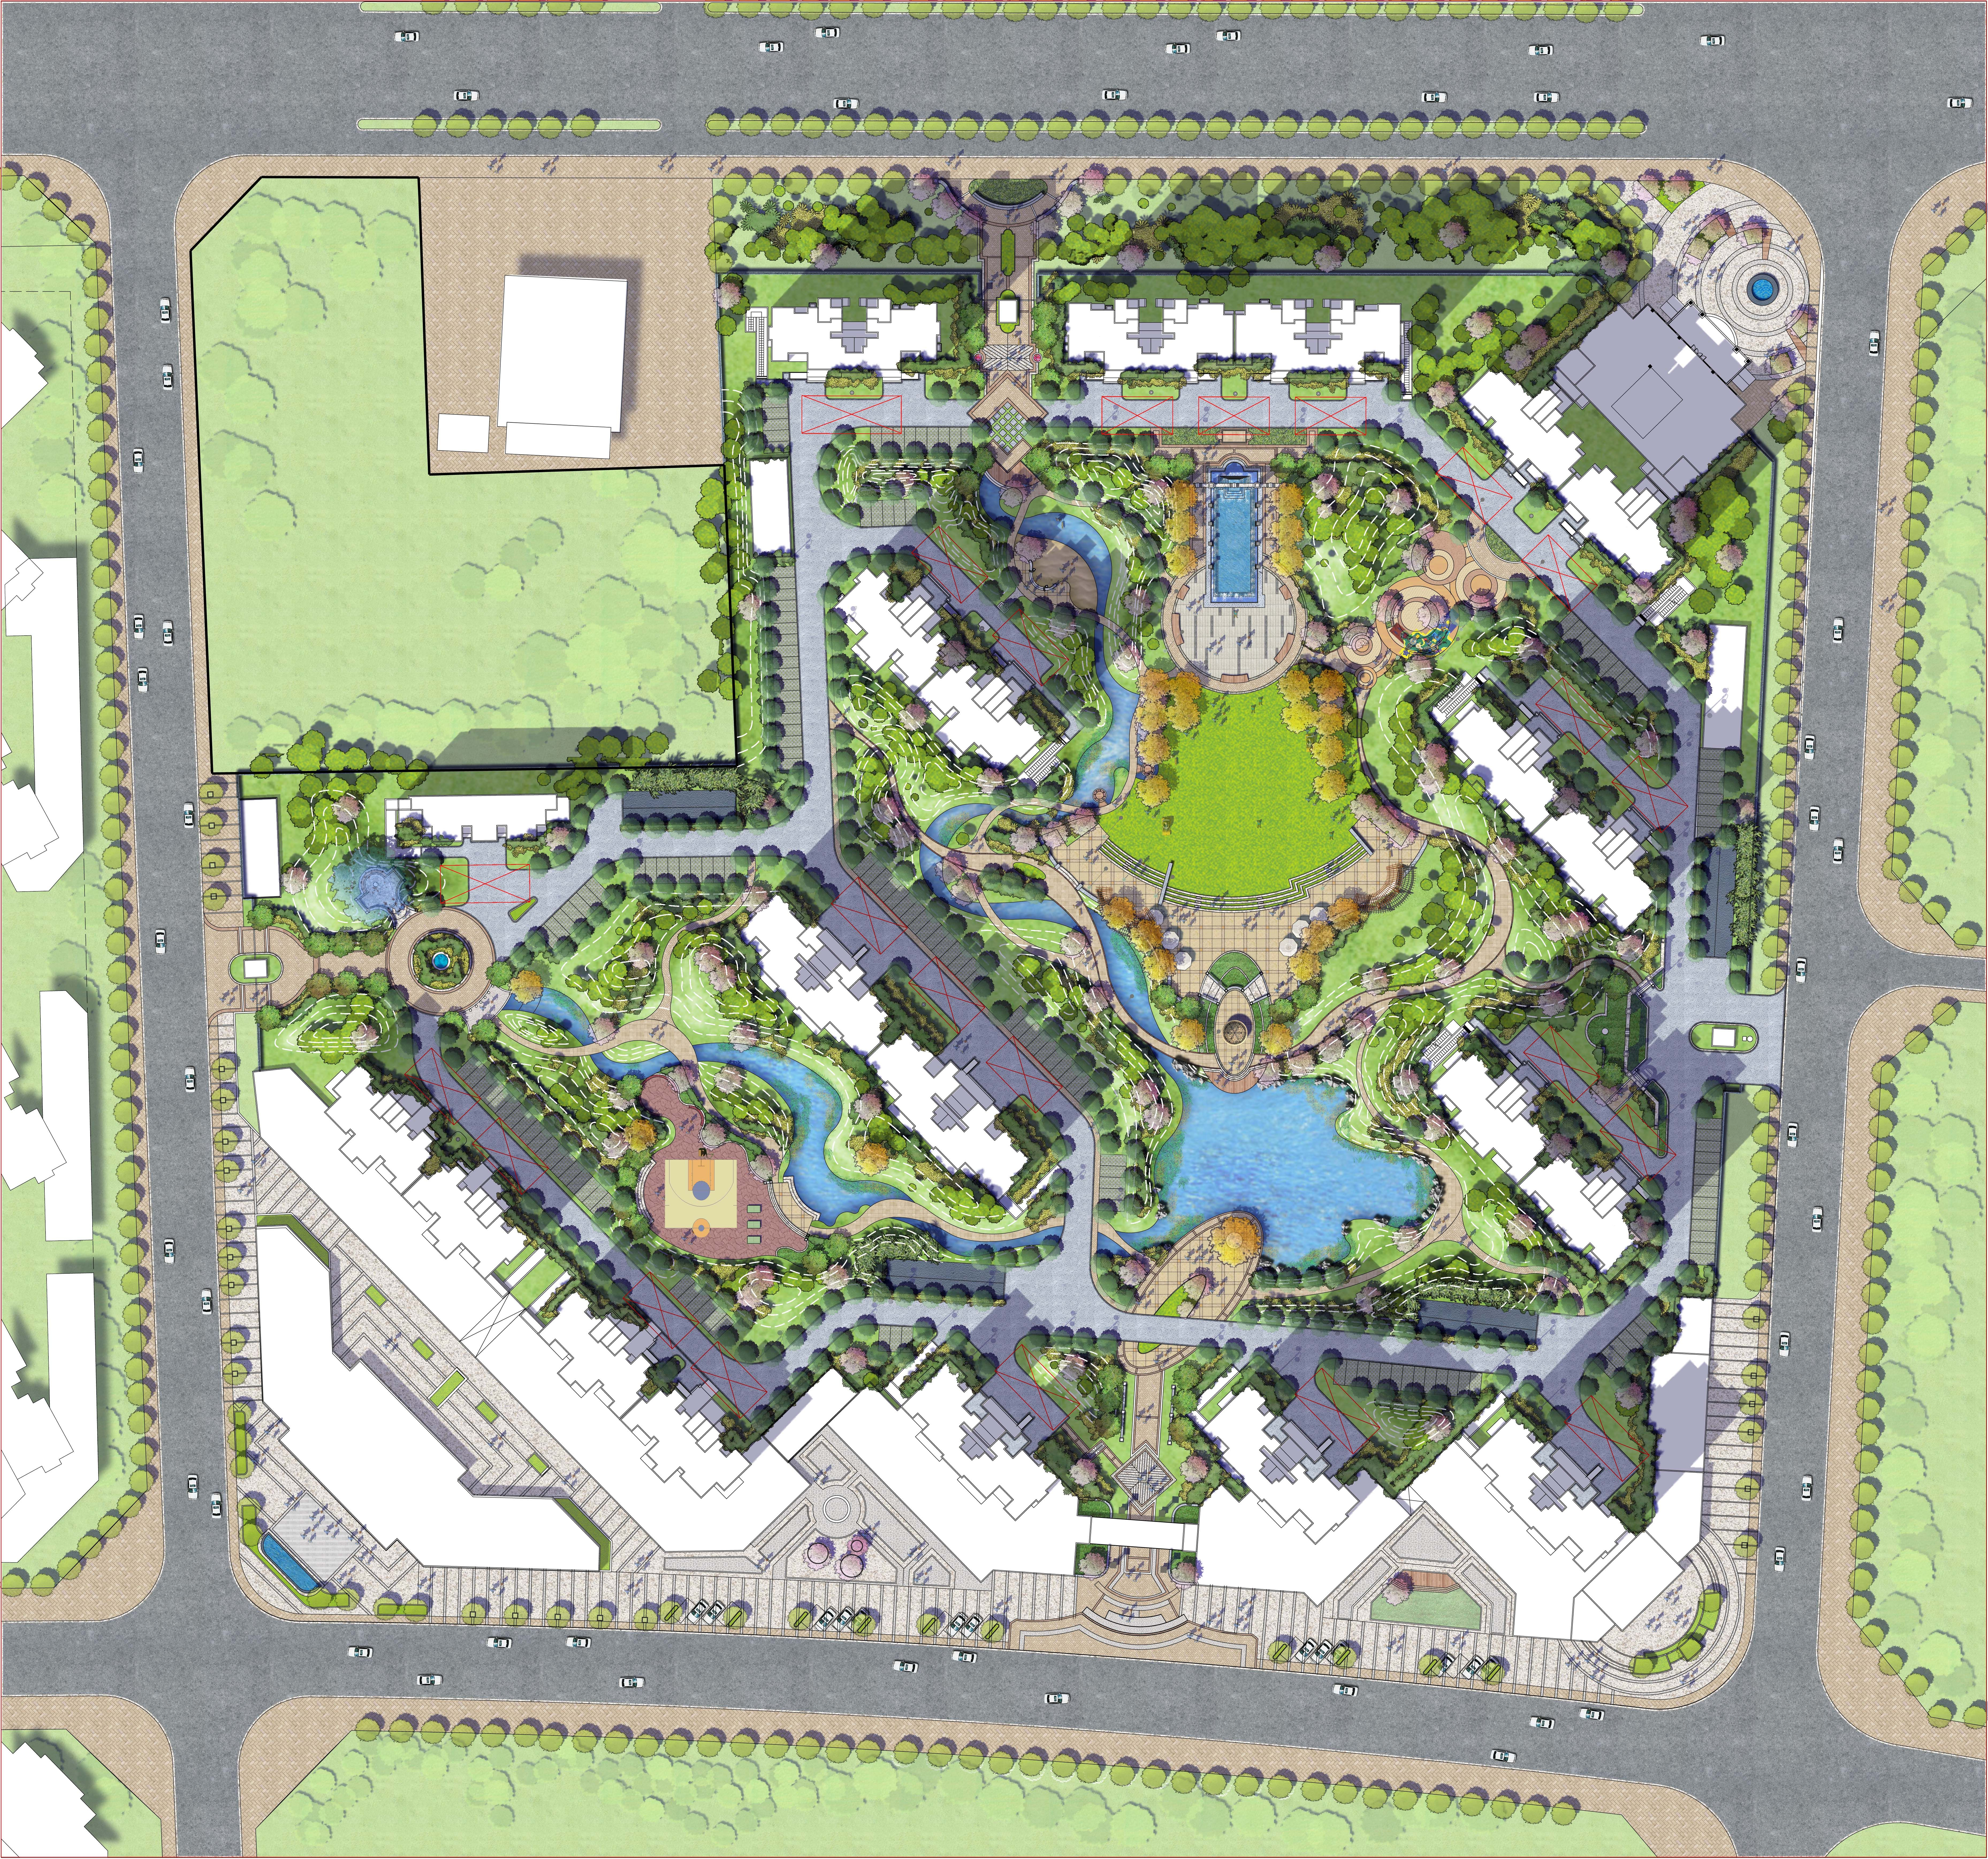 Landscape Design Outdoor Construction Residential: ARCH - HIGHRISE RESIDENTIAL